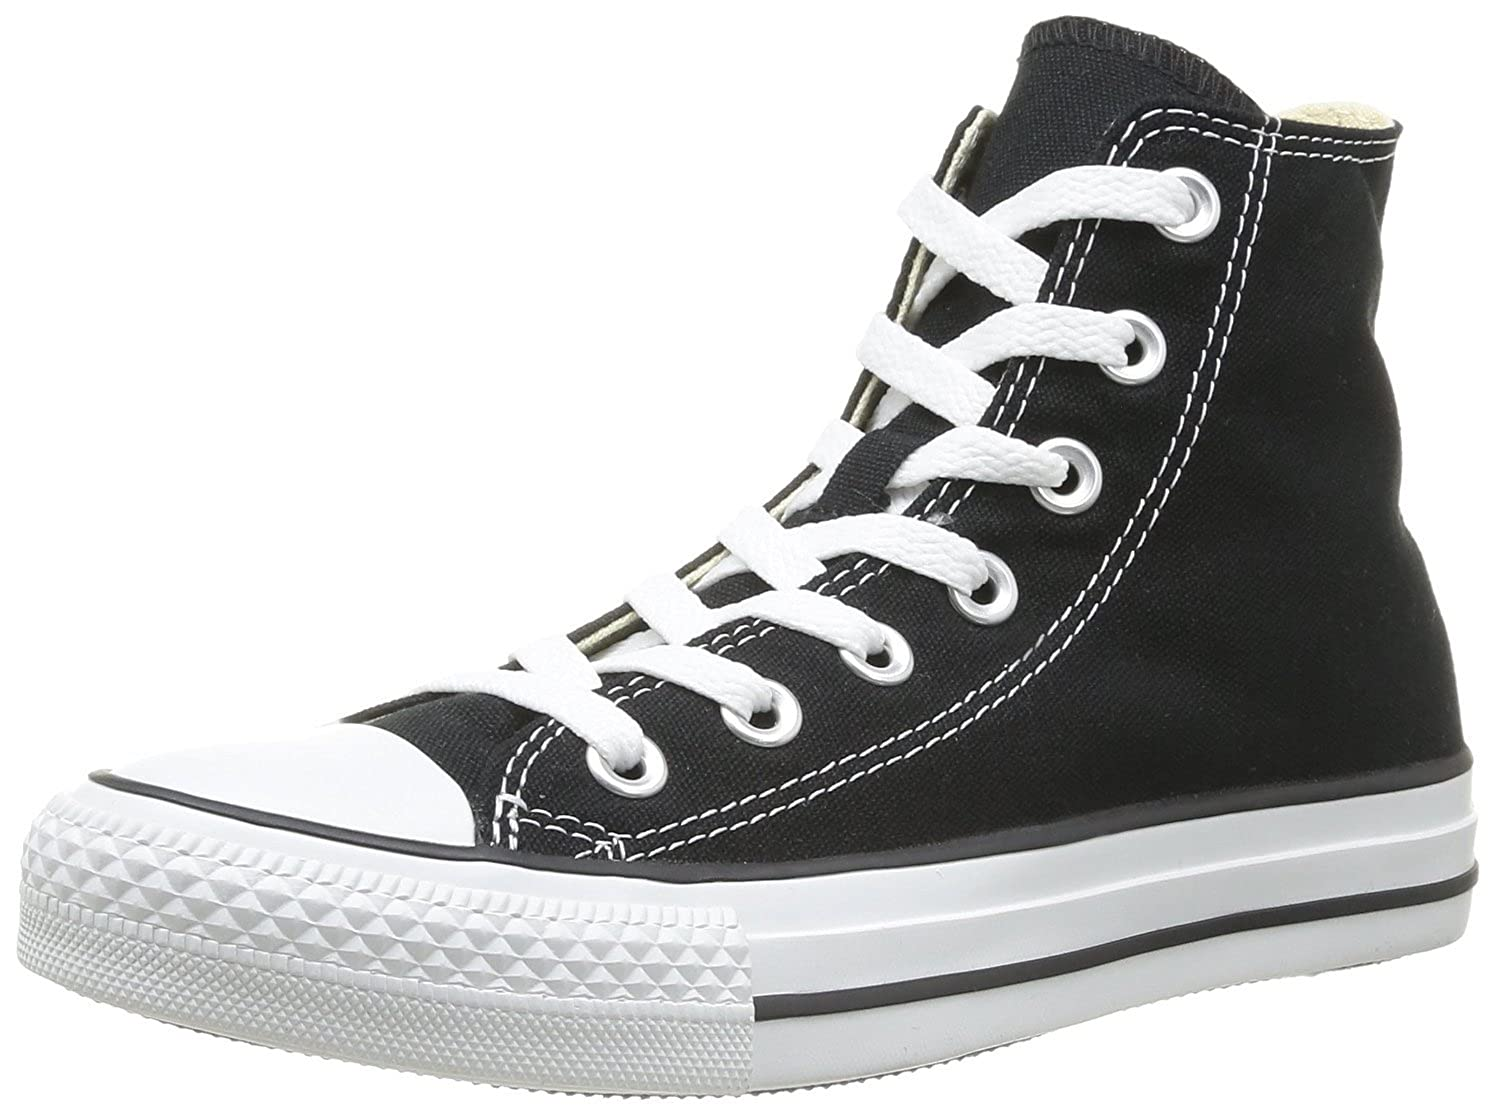 d031aaacac Converse Women's Chuck Taylor High Tops (6 B(M) US, Black) free ...